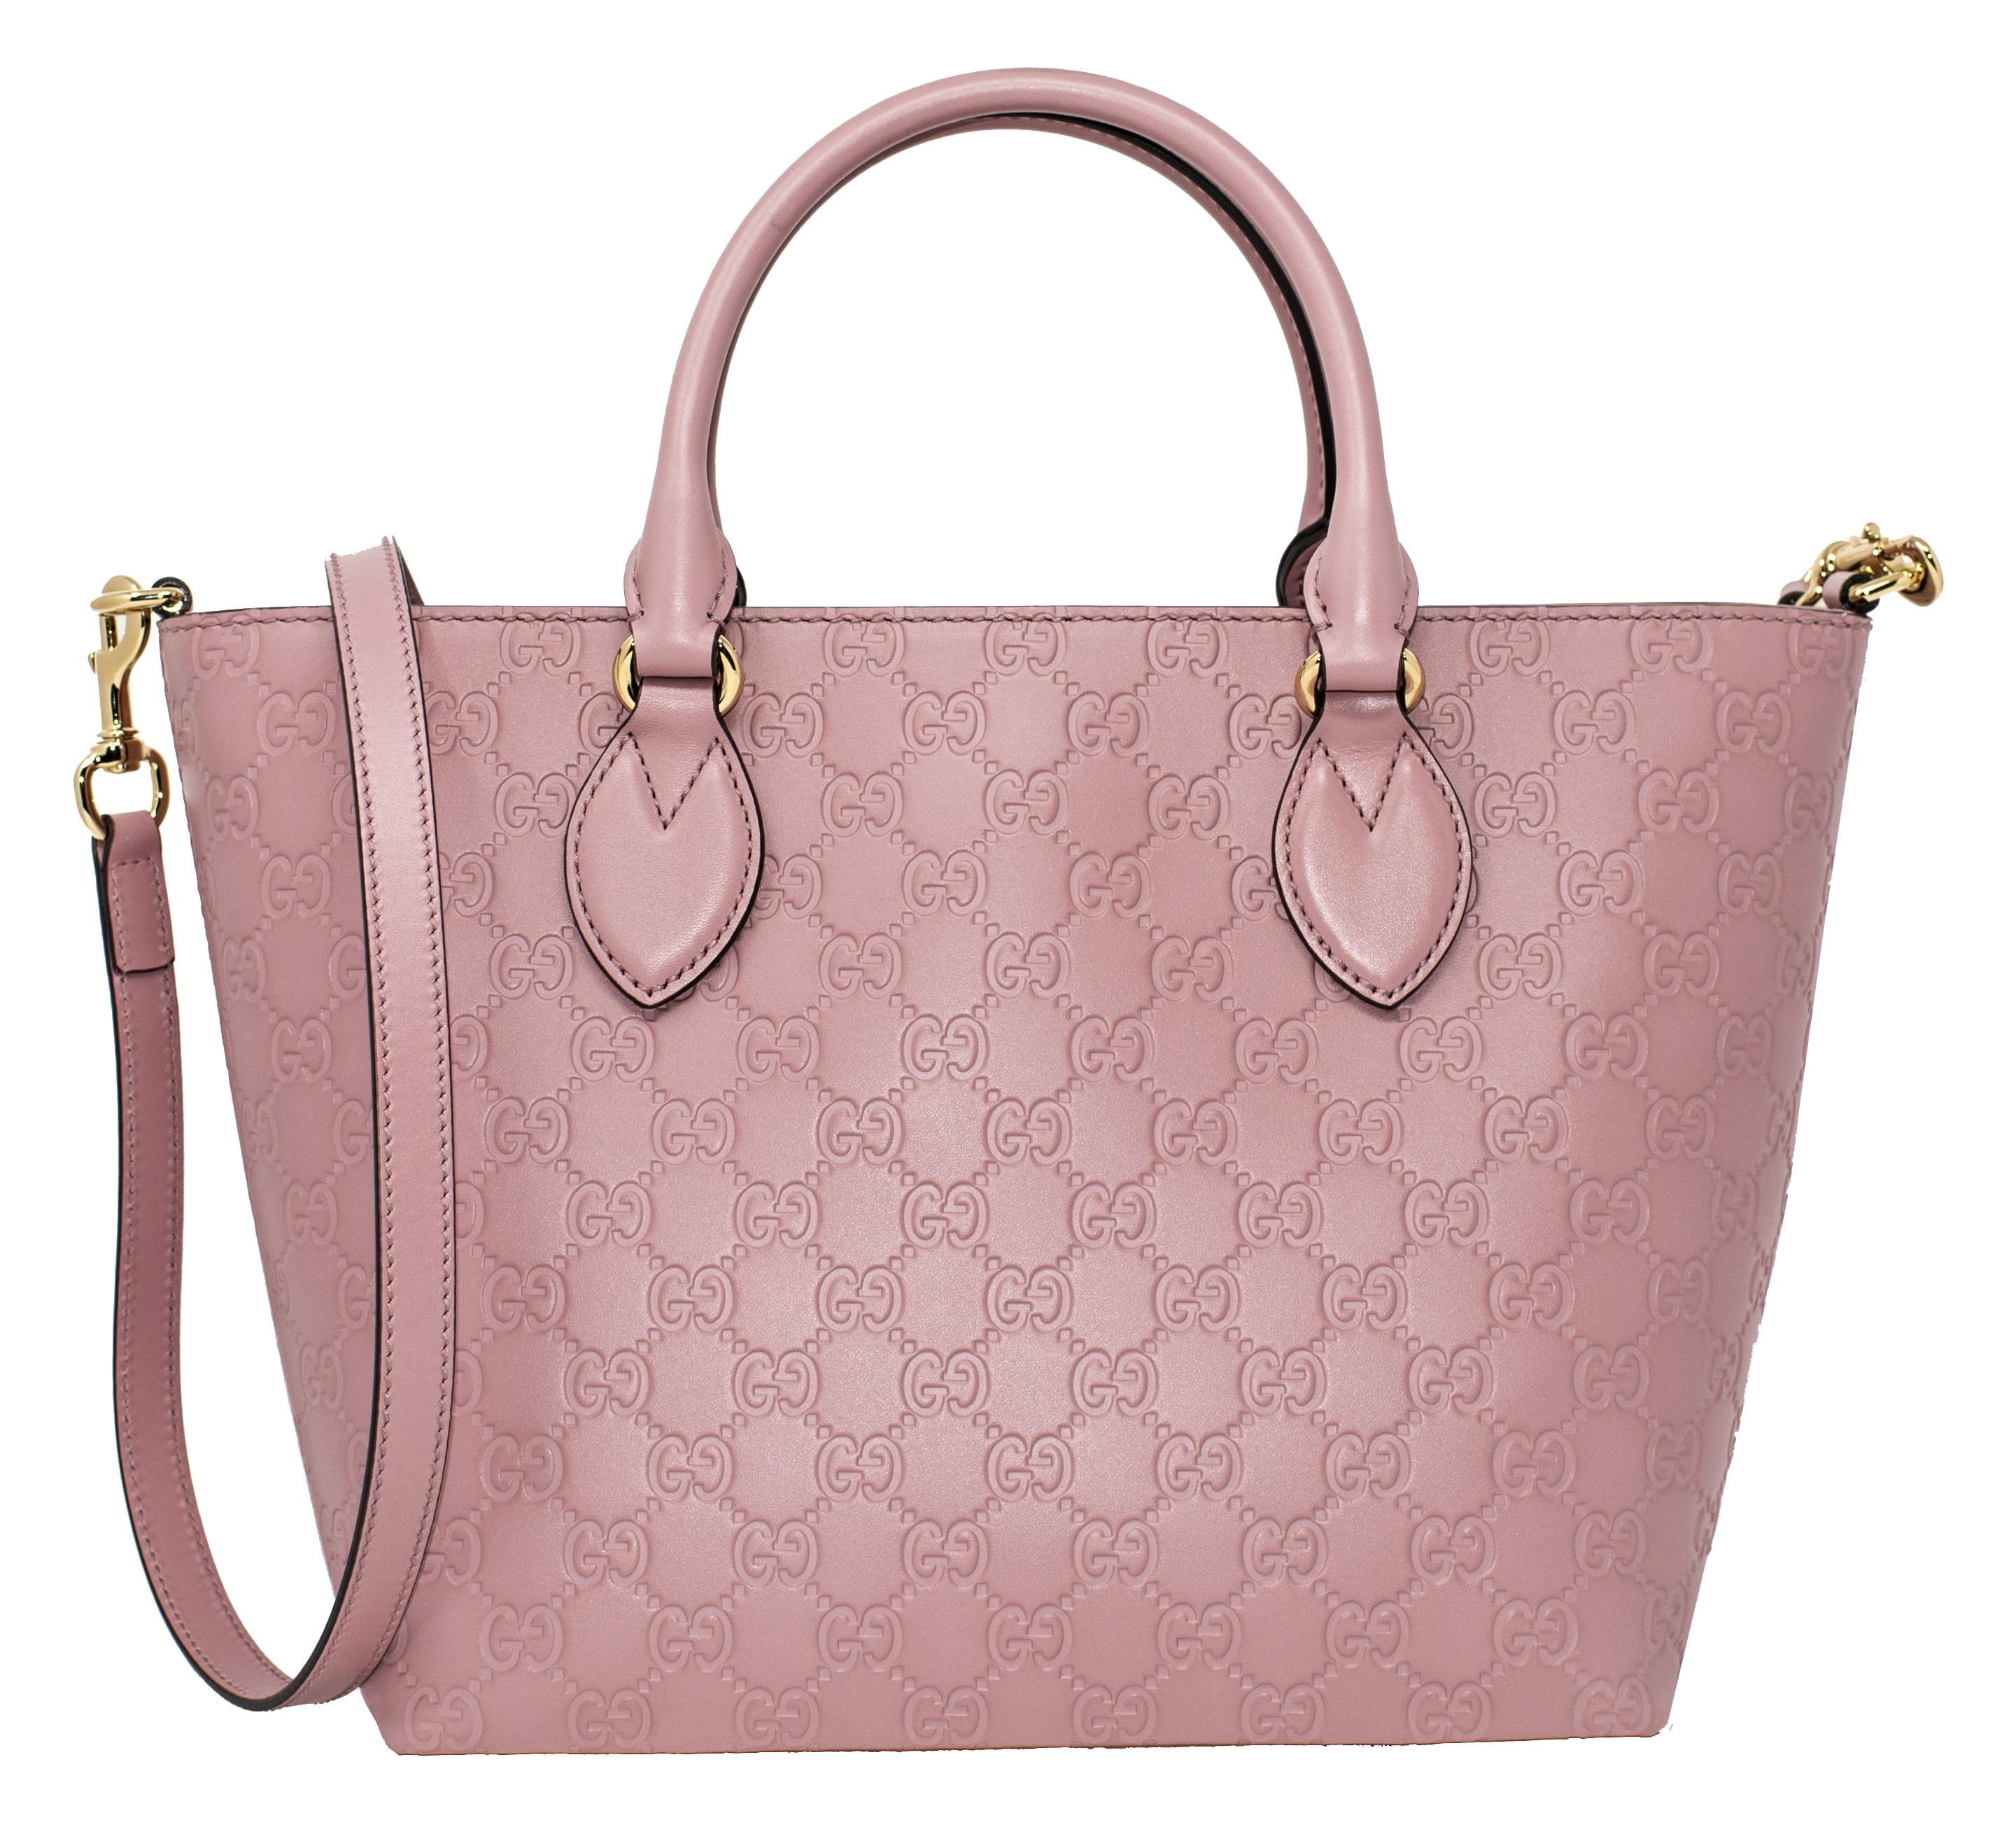 Gucci New Gucci Signature Candy Pink Top Handle Tote Bag sX67yh3